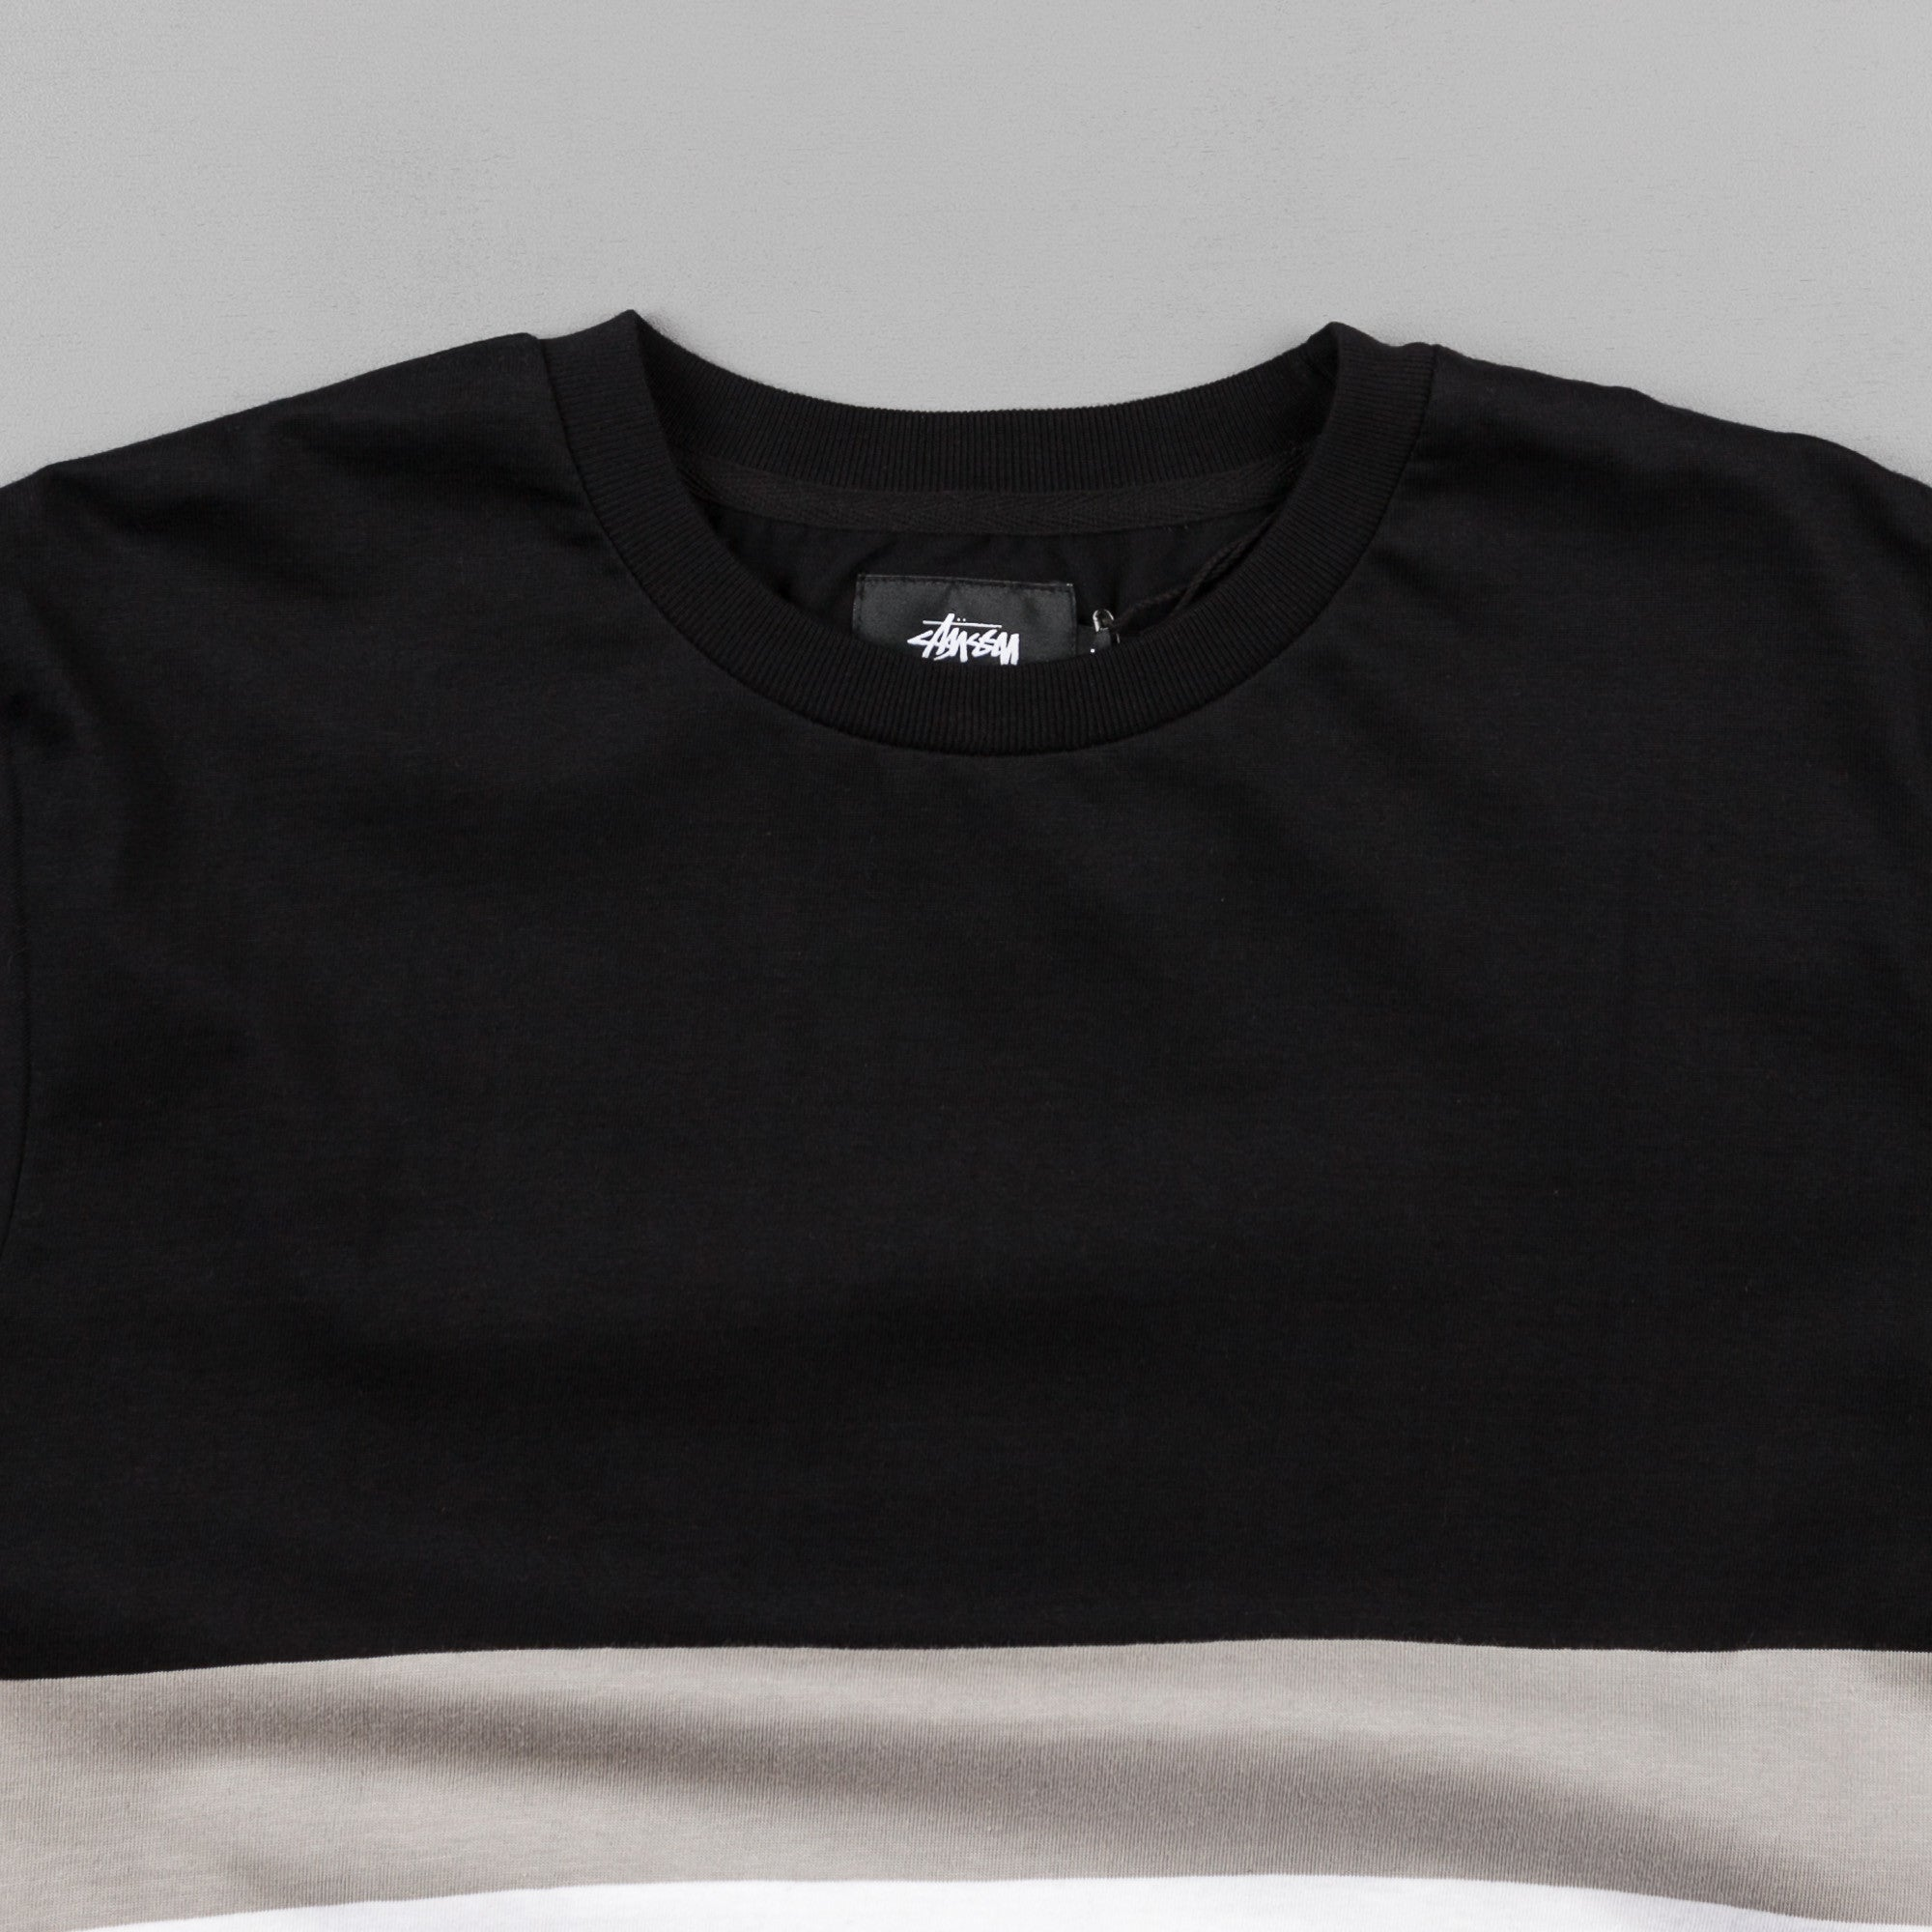 Stussy Race Long Sleeve T-Shirt - Black